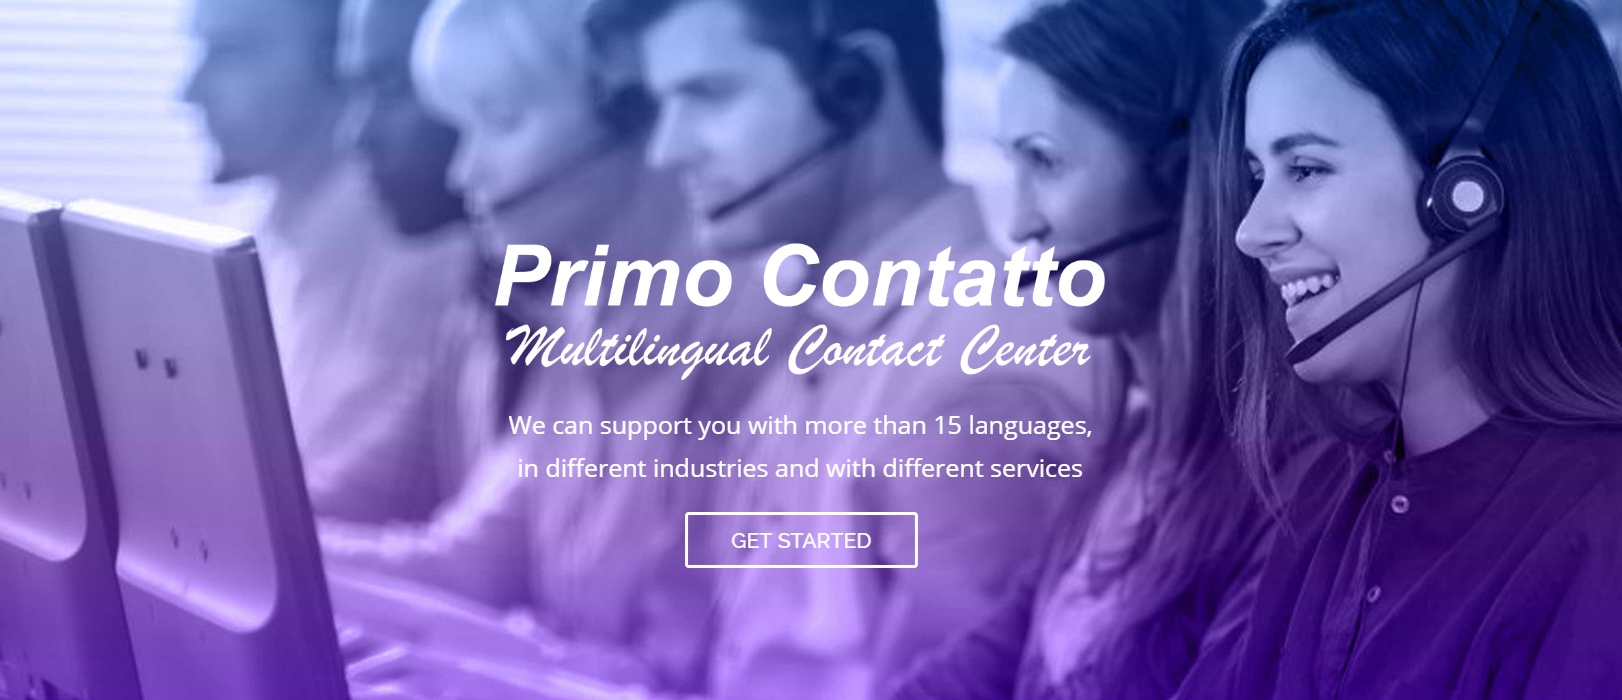 primocontatto-multilingual-outsourcing-center-service-media-monitoring-icon